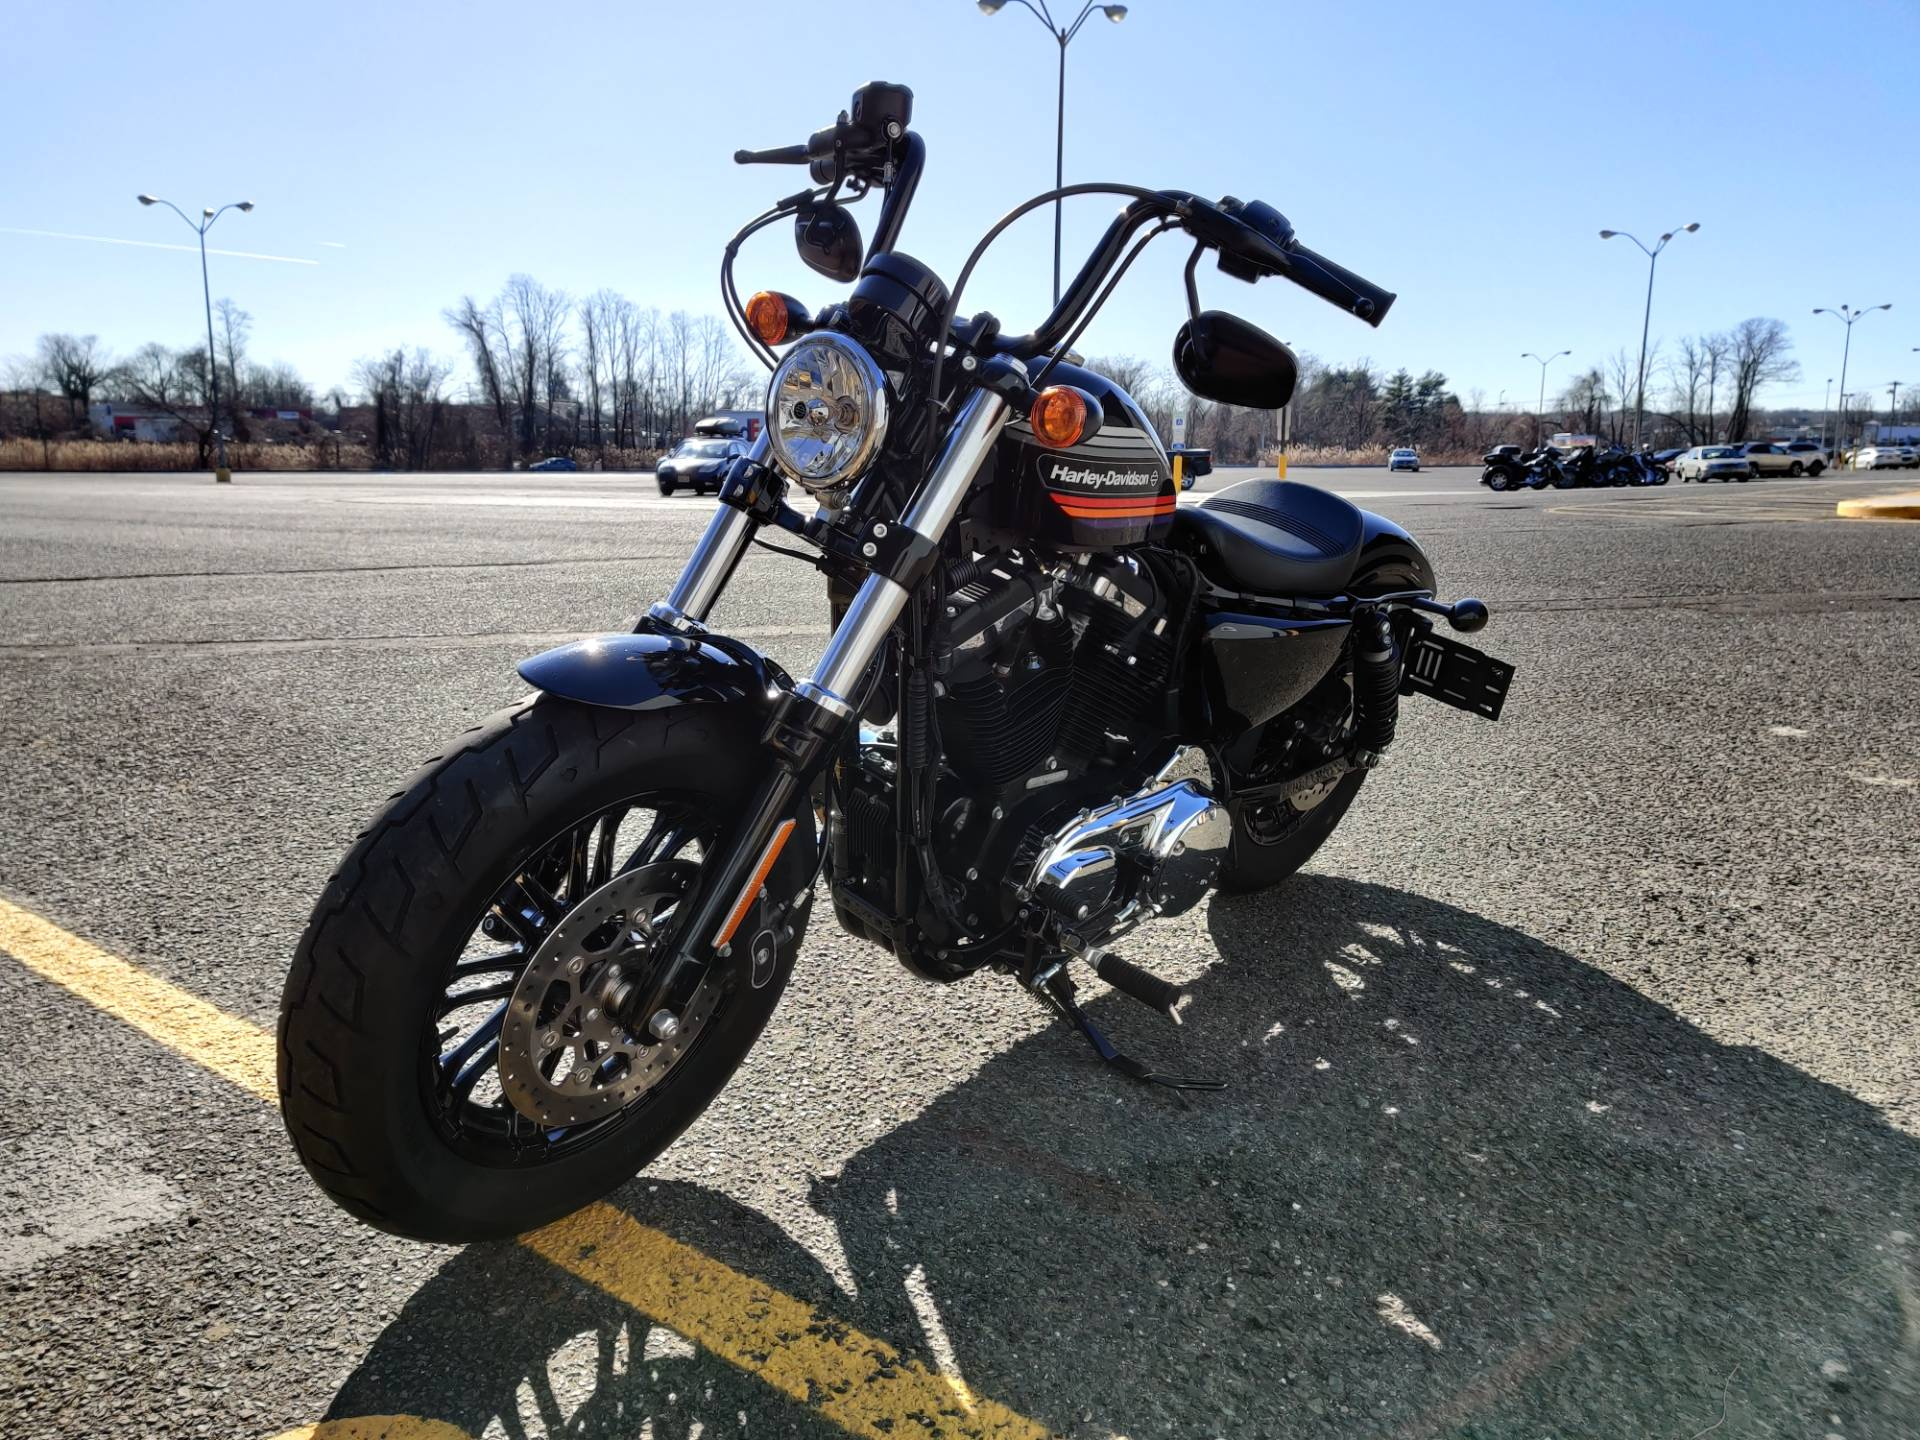 2018 Harley-Davidson Forty-Eight Special in West Long Branch, New Jersey - Photo 5